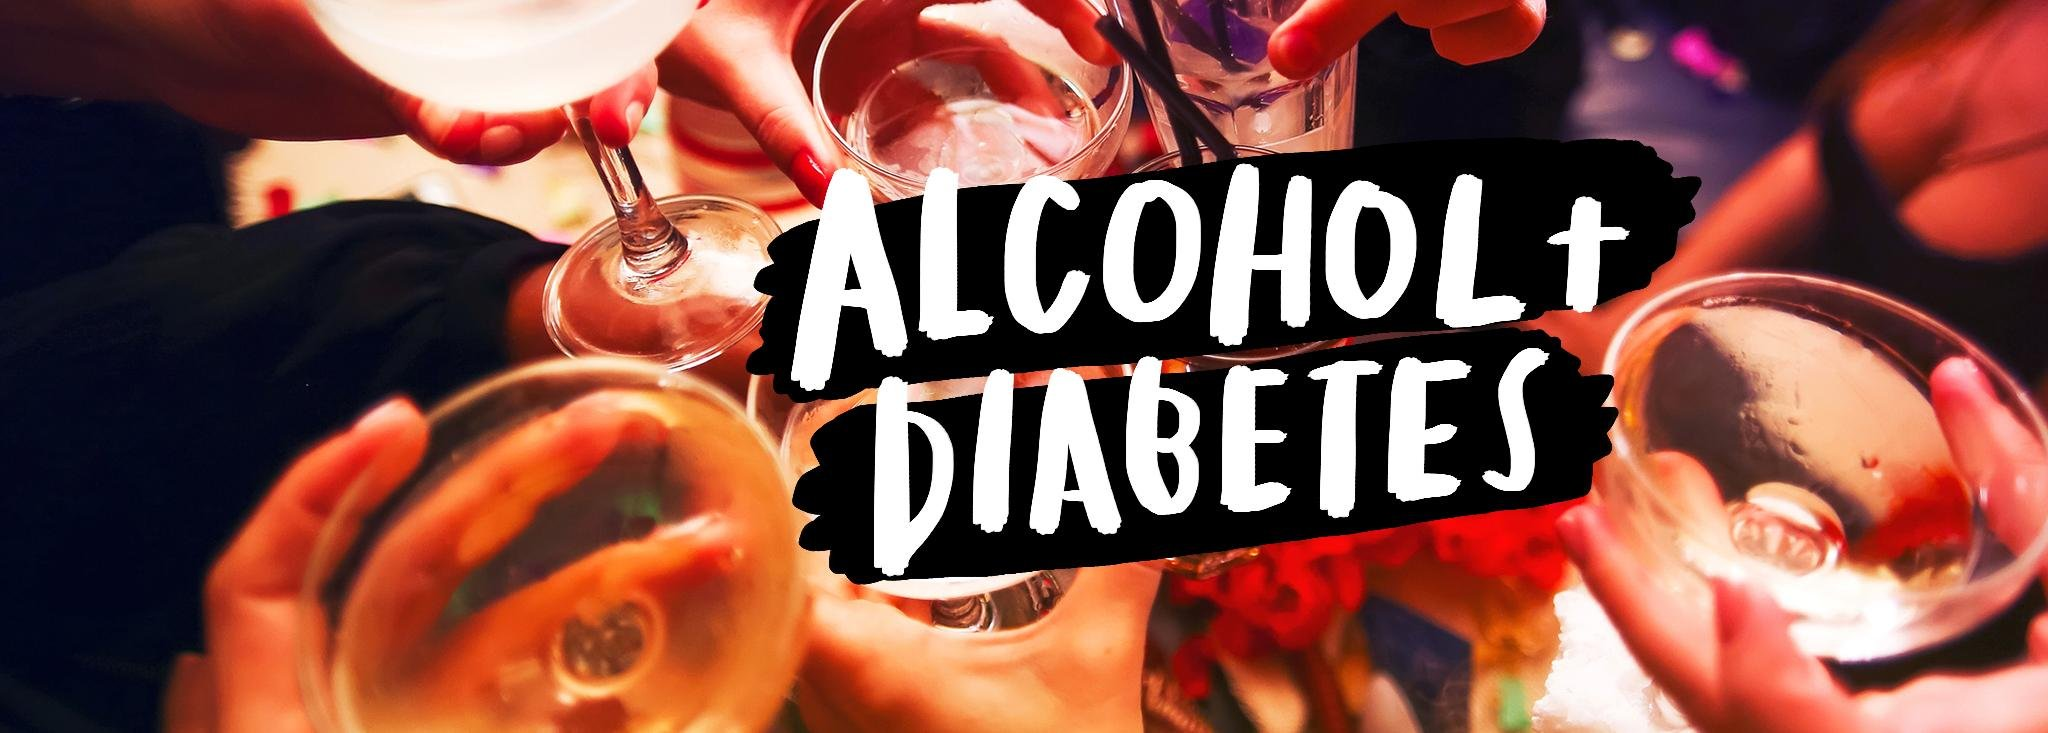 Can You Drink Alcohol If You Have Diabetes?